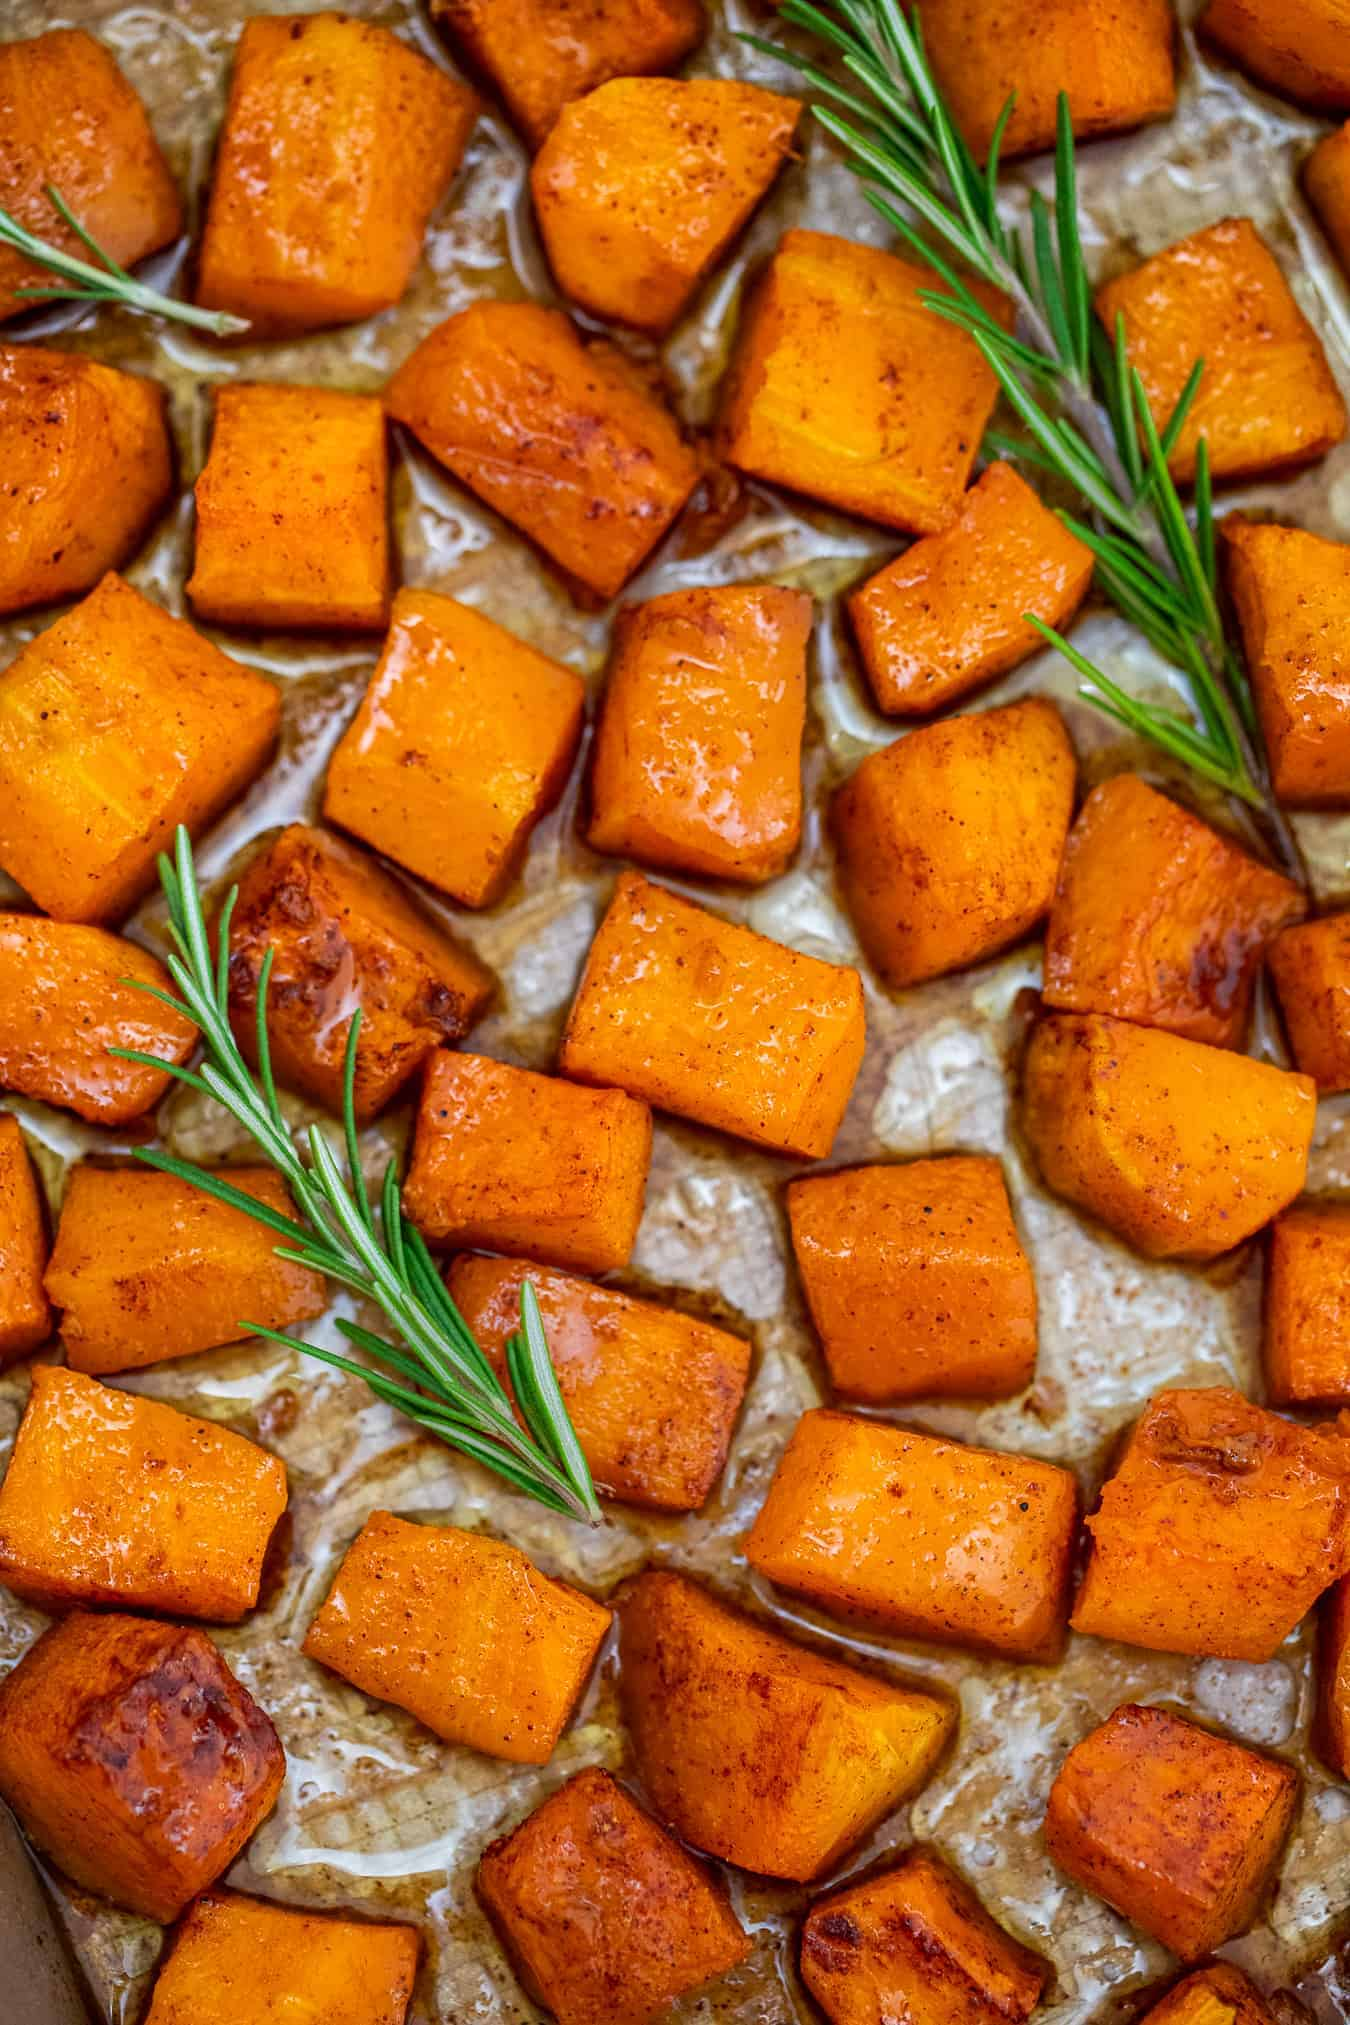 Roasted Butternut Squash A Delicious Side Dish Centsless Meals